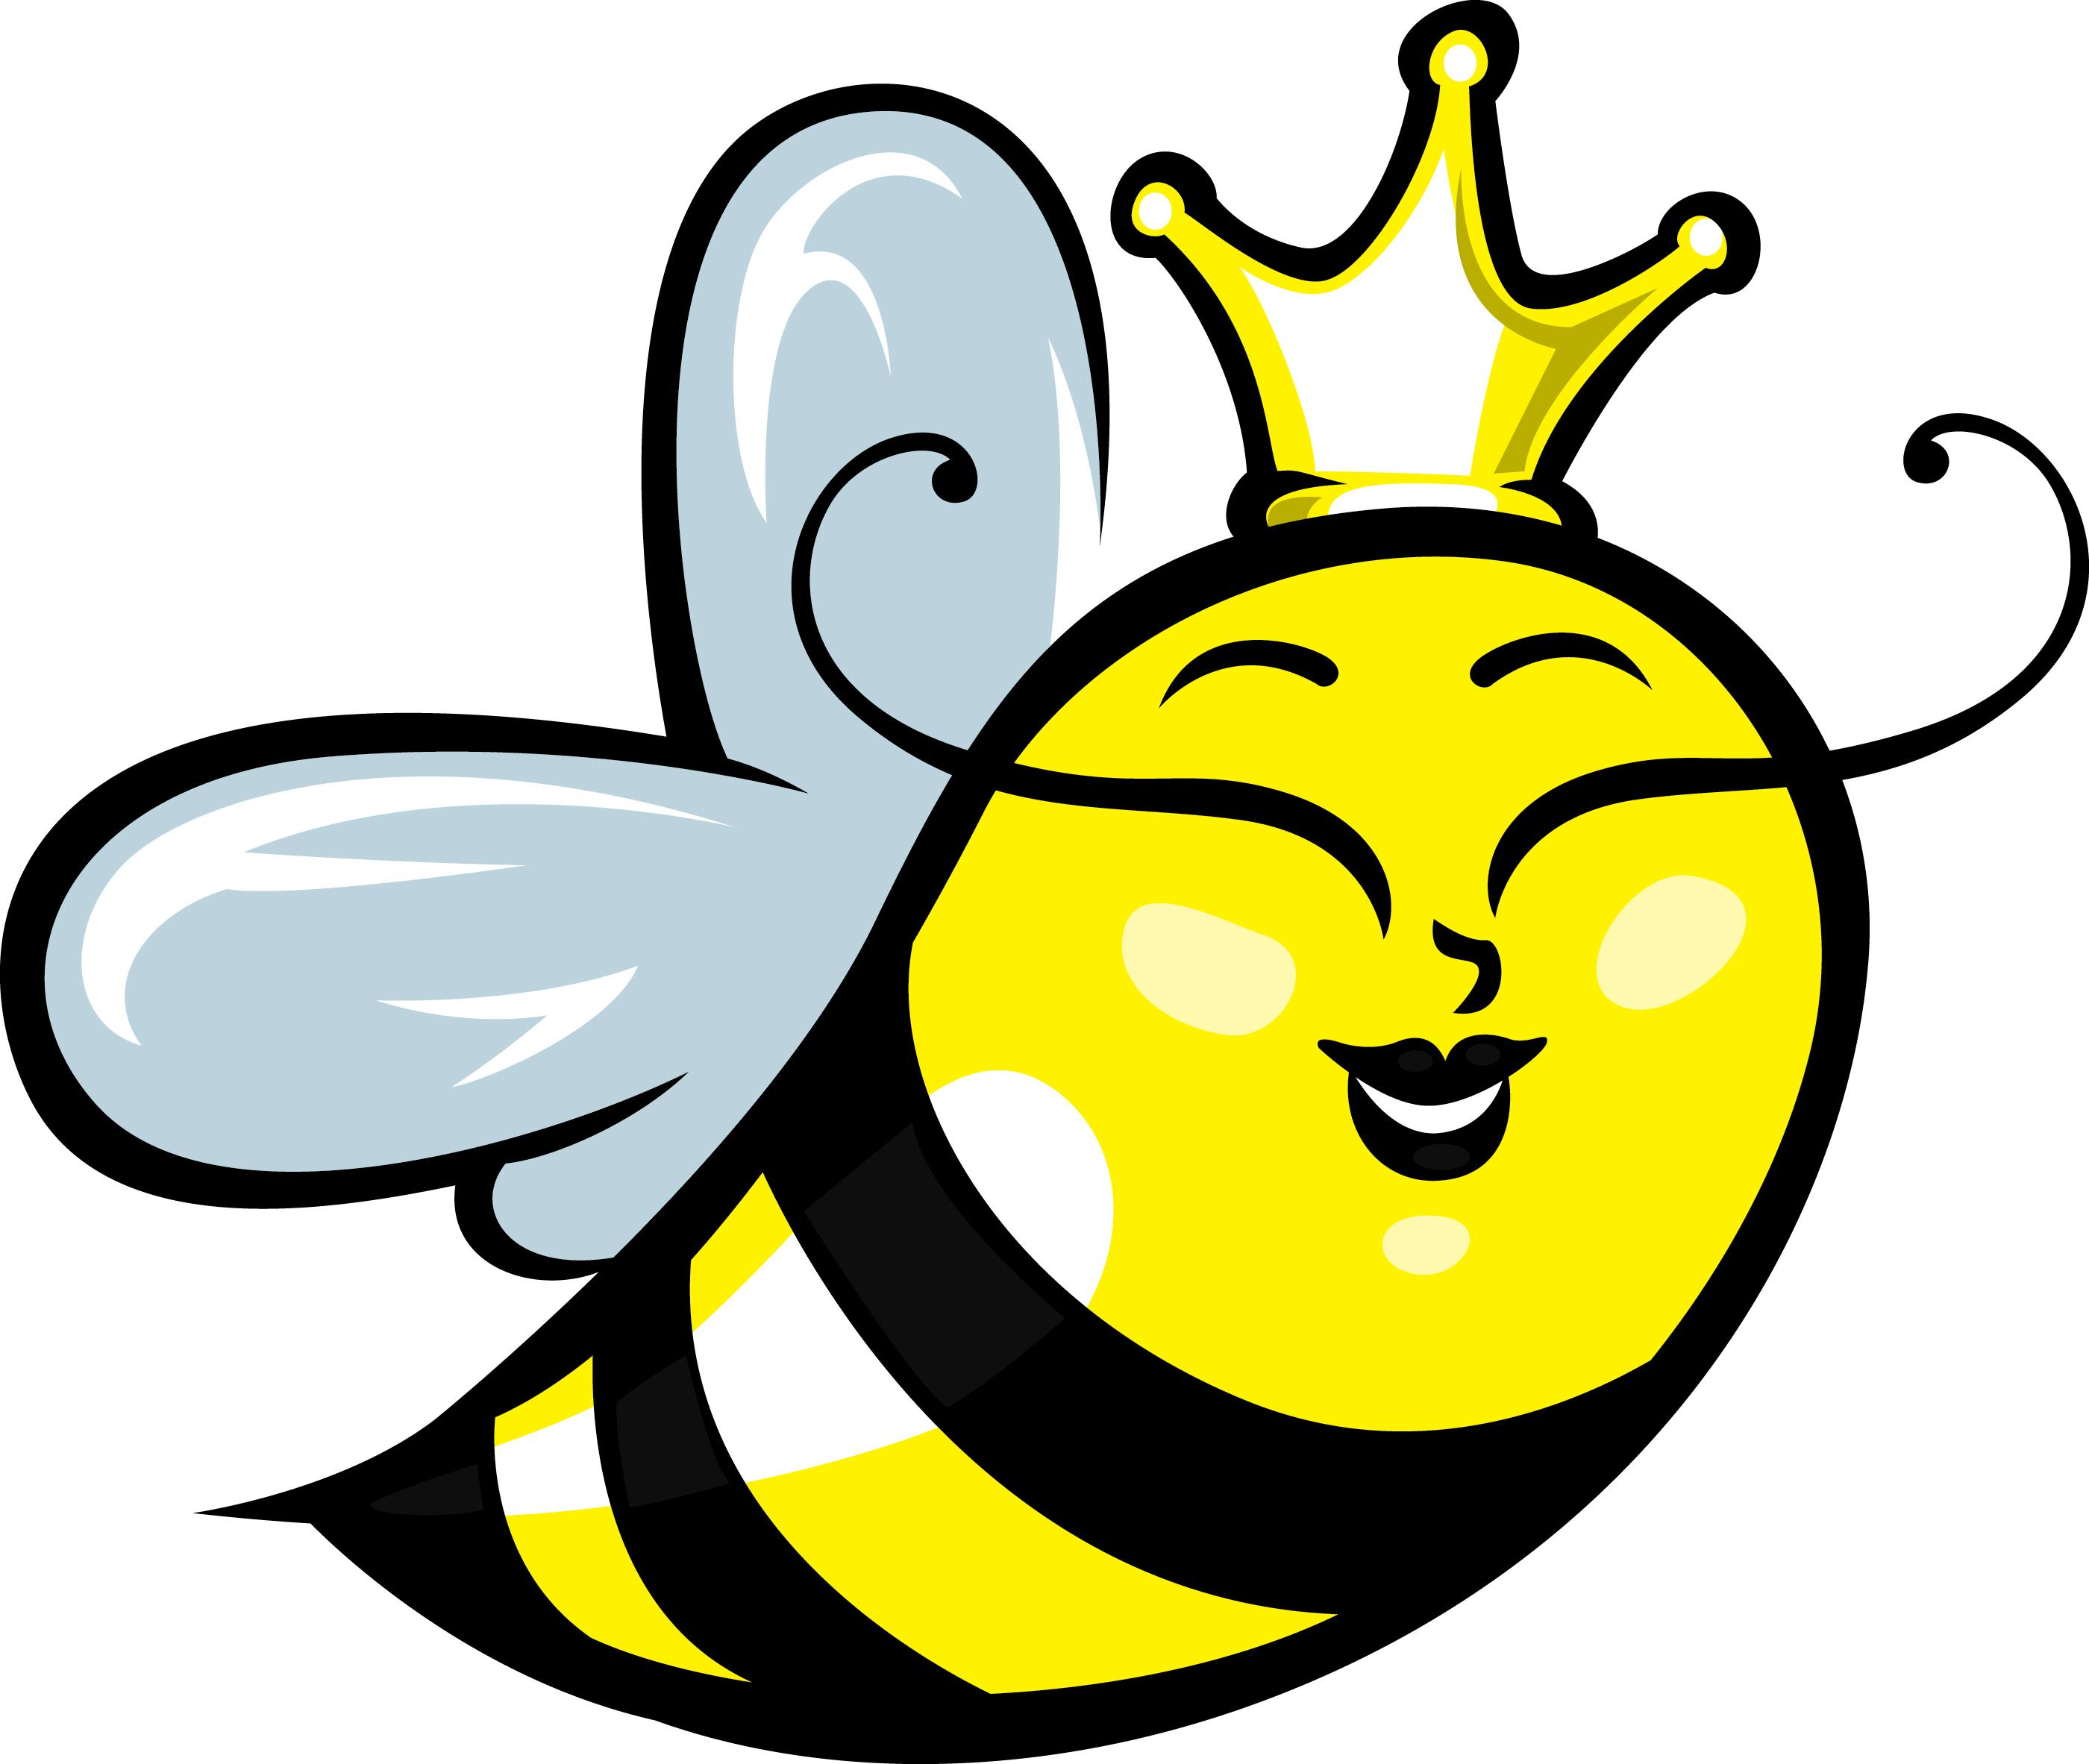 animated bee clipart clipart suggest motion clip art free motion clip art happy mother's day